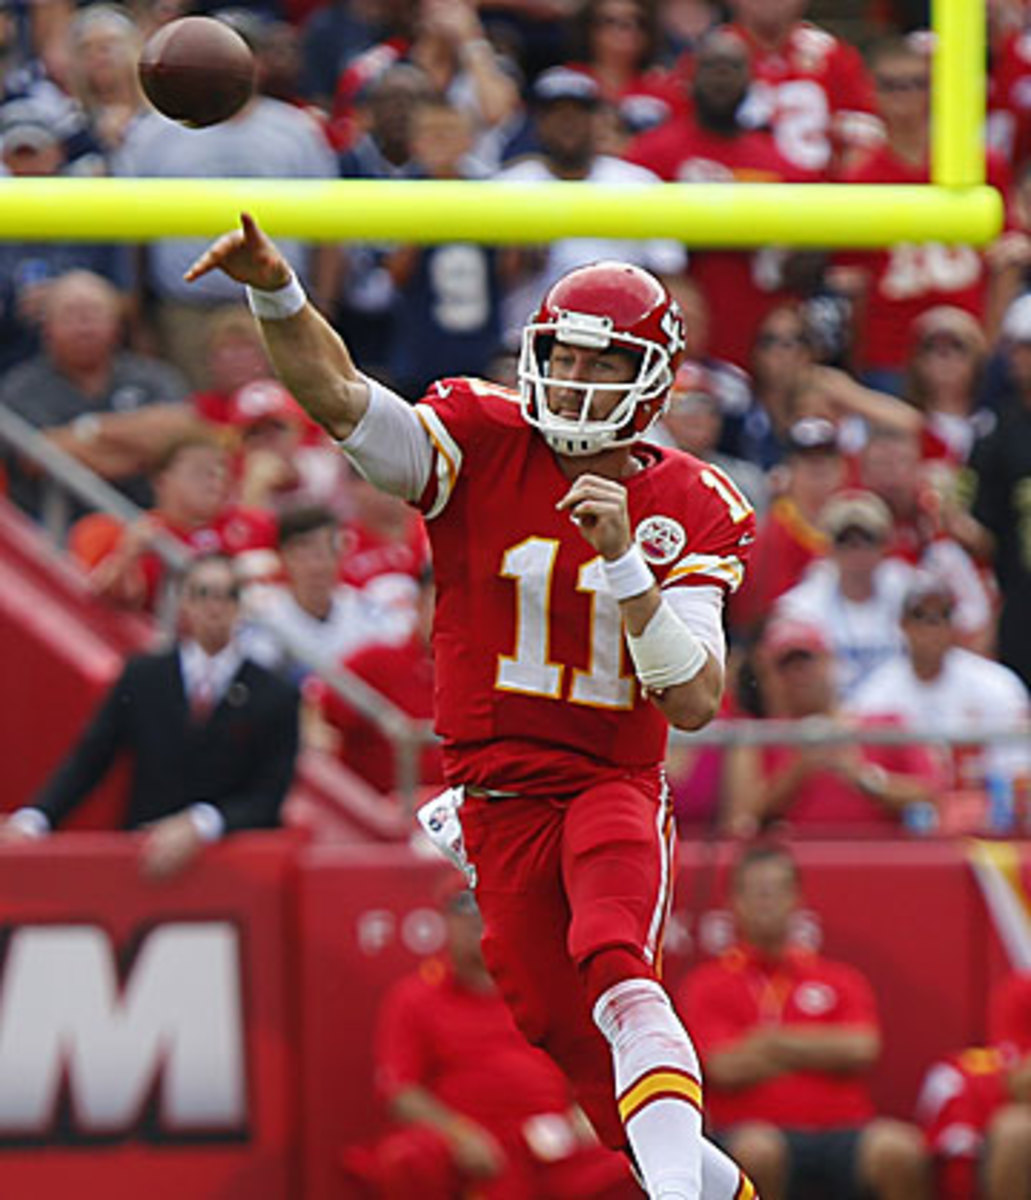 Alex Smith hasn't committed a turnover yet this year, as the Chiefs have already matched their 2012 win total.